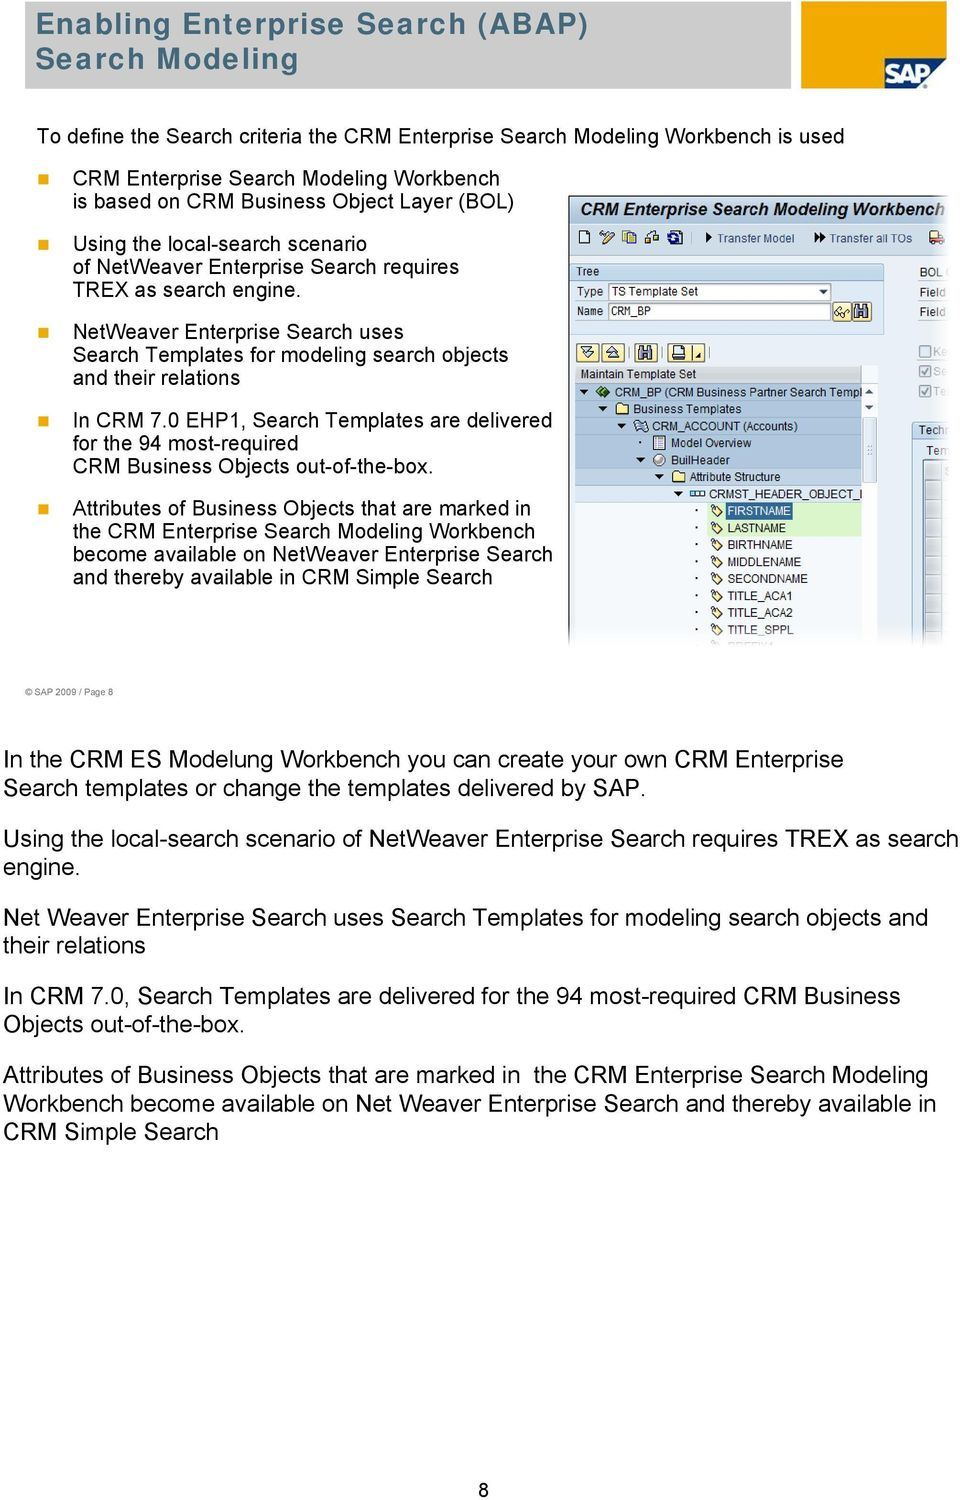 NetWeaver Enterprise Search uses Search Templates for modeling search objects and their relations In CRM 7.